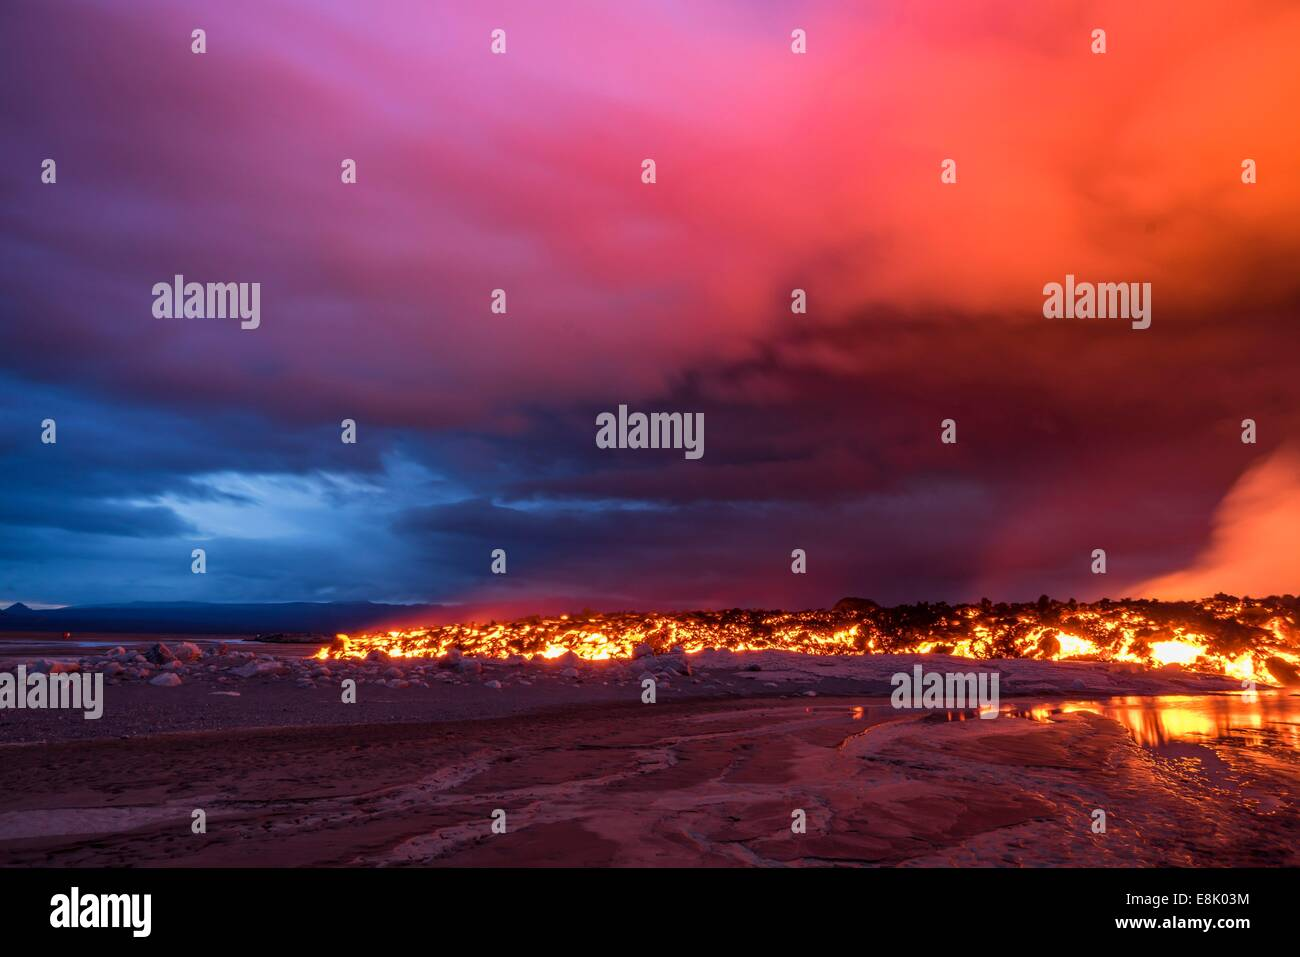 Glowing lava from the eruption at the Holuhraun Fissure, near the Bardarbunga Volcano, Iceland. - Stock Image